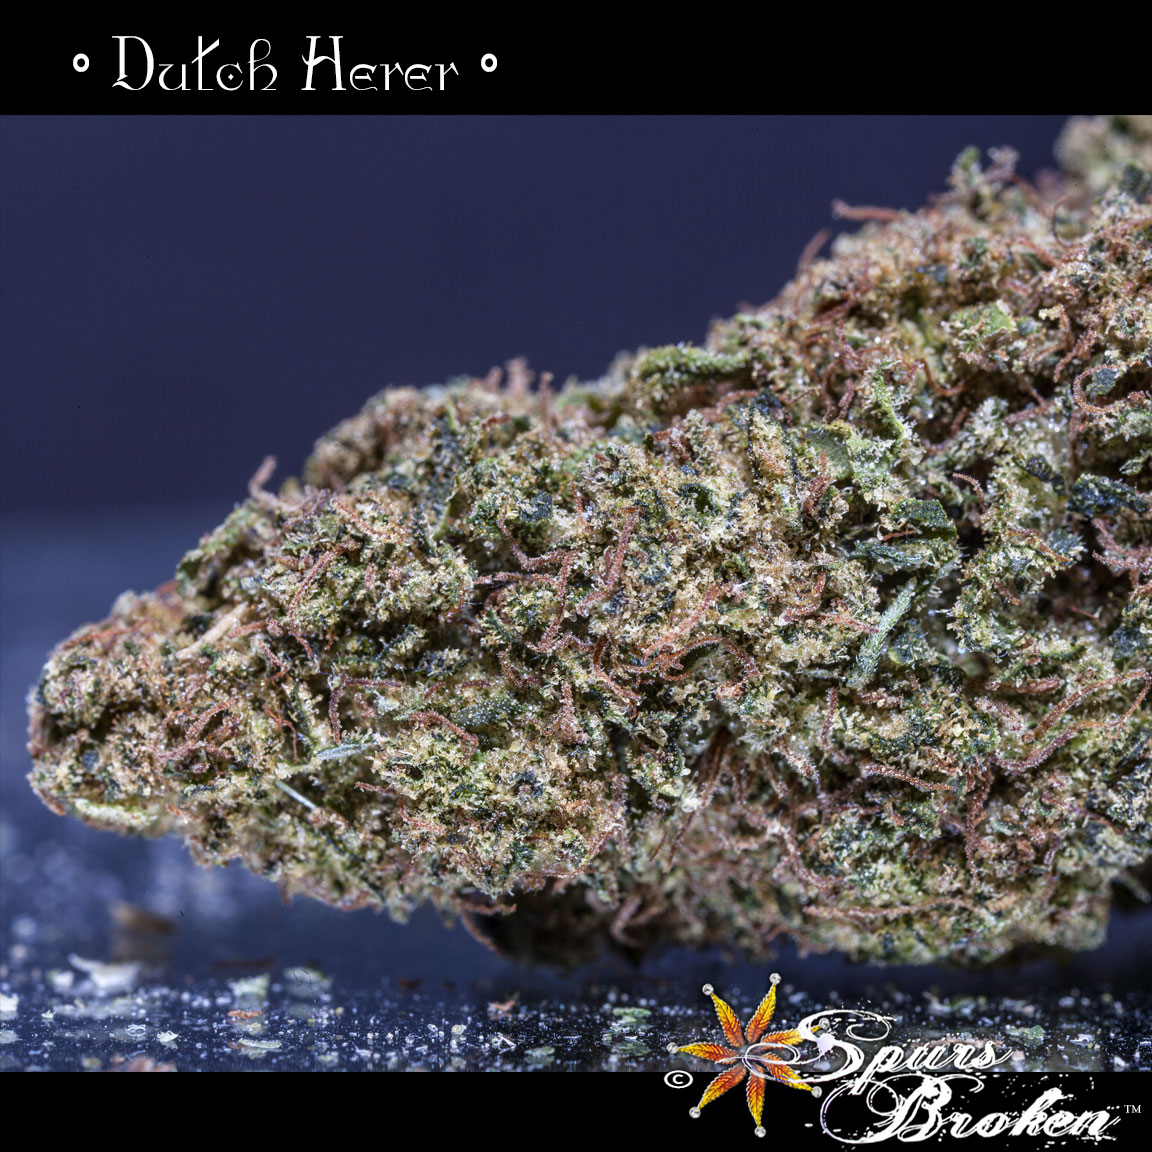 Dutch Herer - Cannabis Macro Photography by Spurs Broken (Robert R. Sanders)